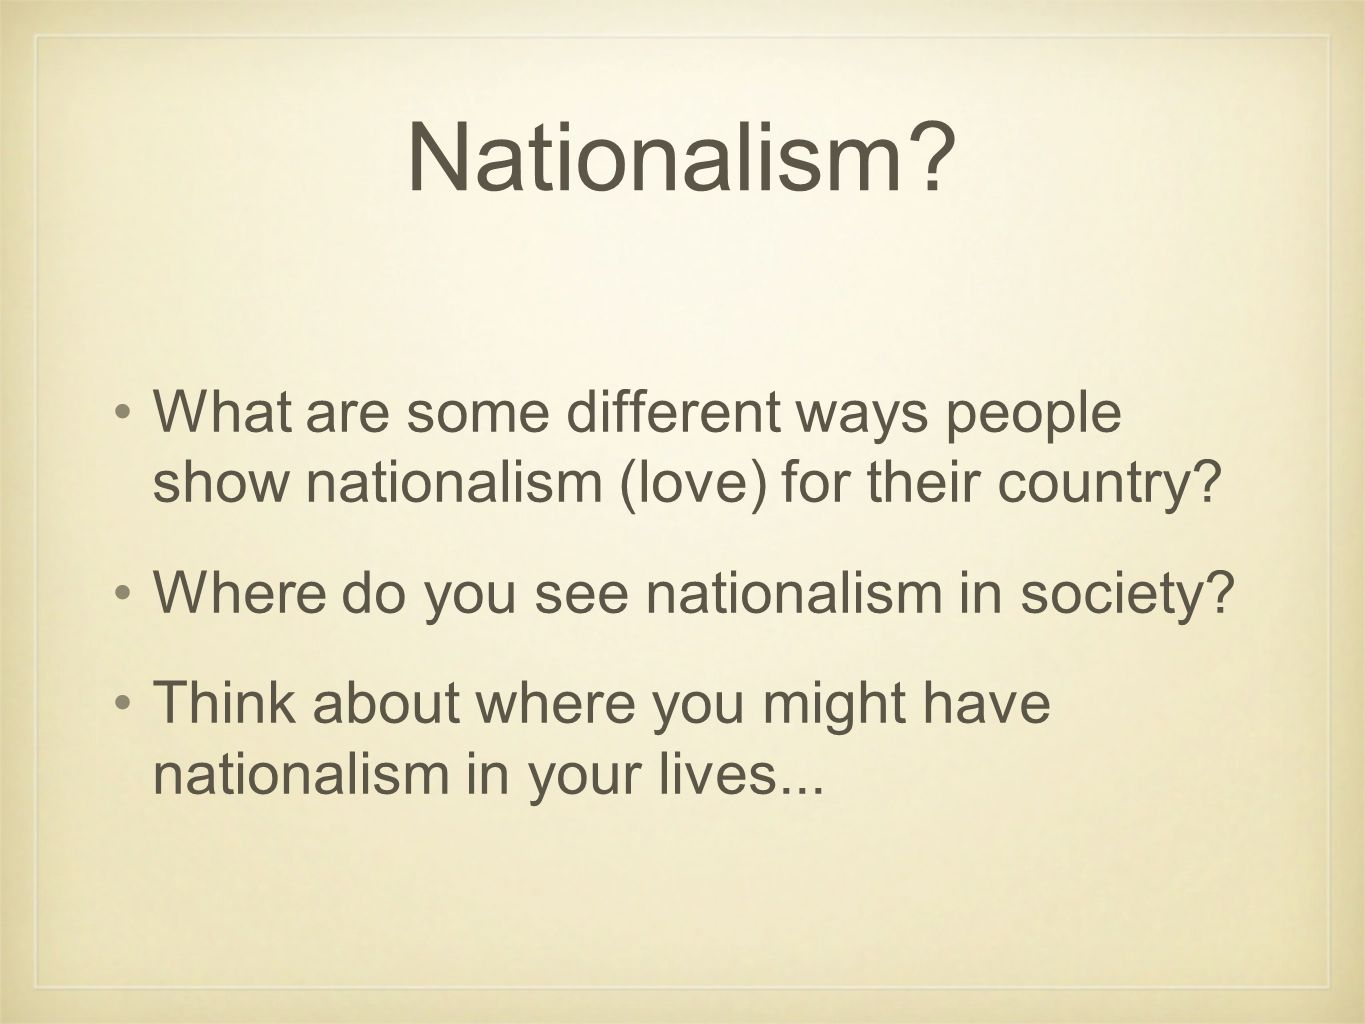 Nationalism? What are some different ways people show nationalism (love) for their country? Where do you see nationalism in society? Think about where